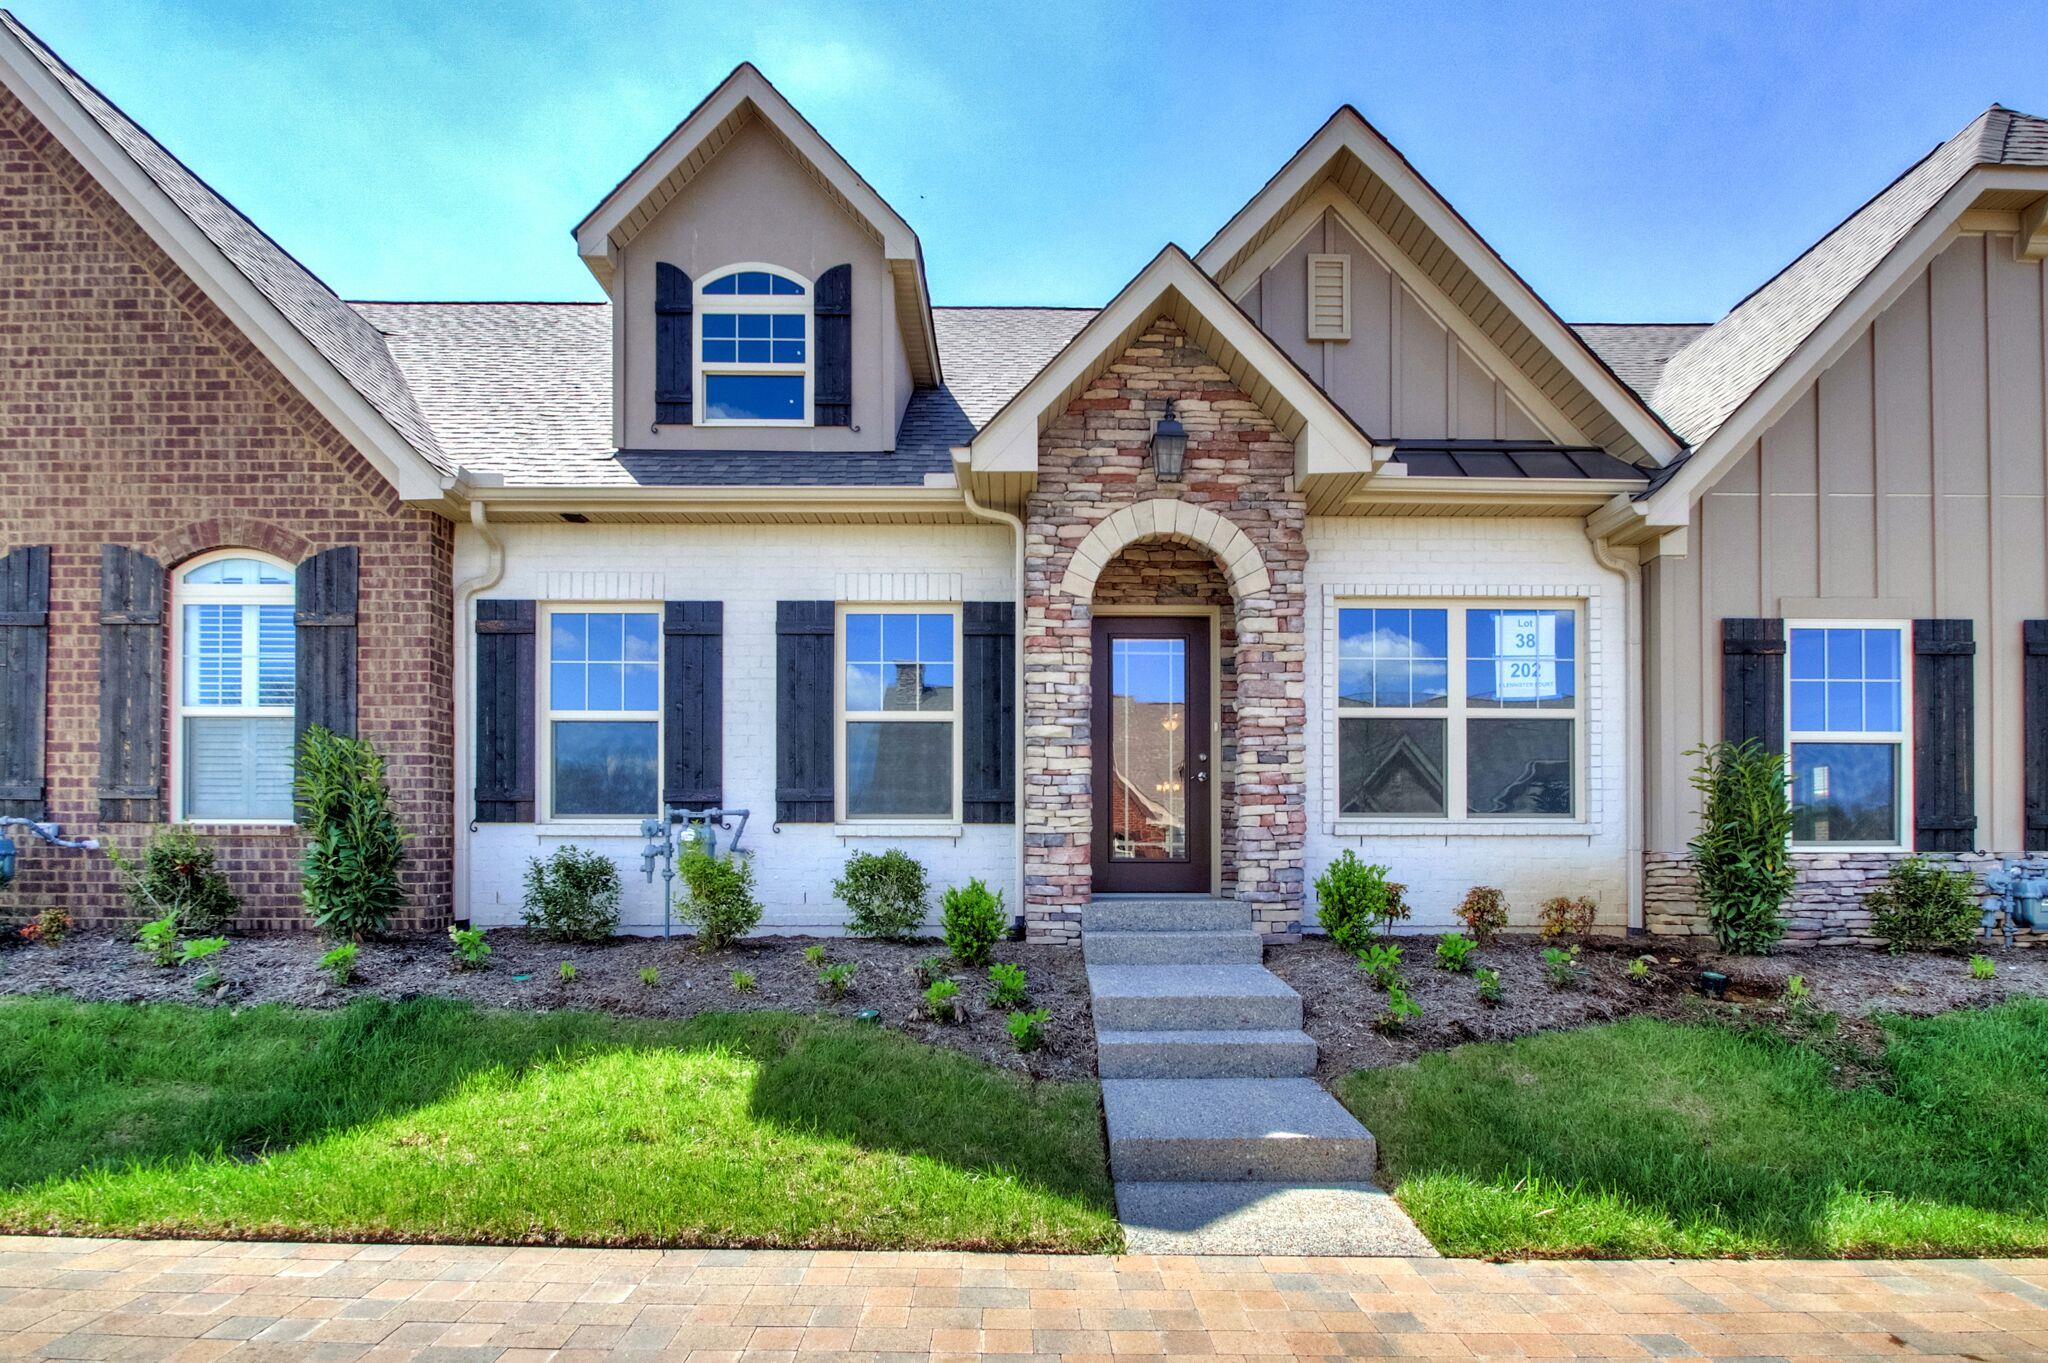 202 Glennister Court,Lot 38, one of homes for sale in Gallatin